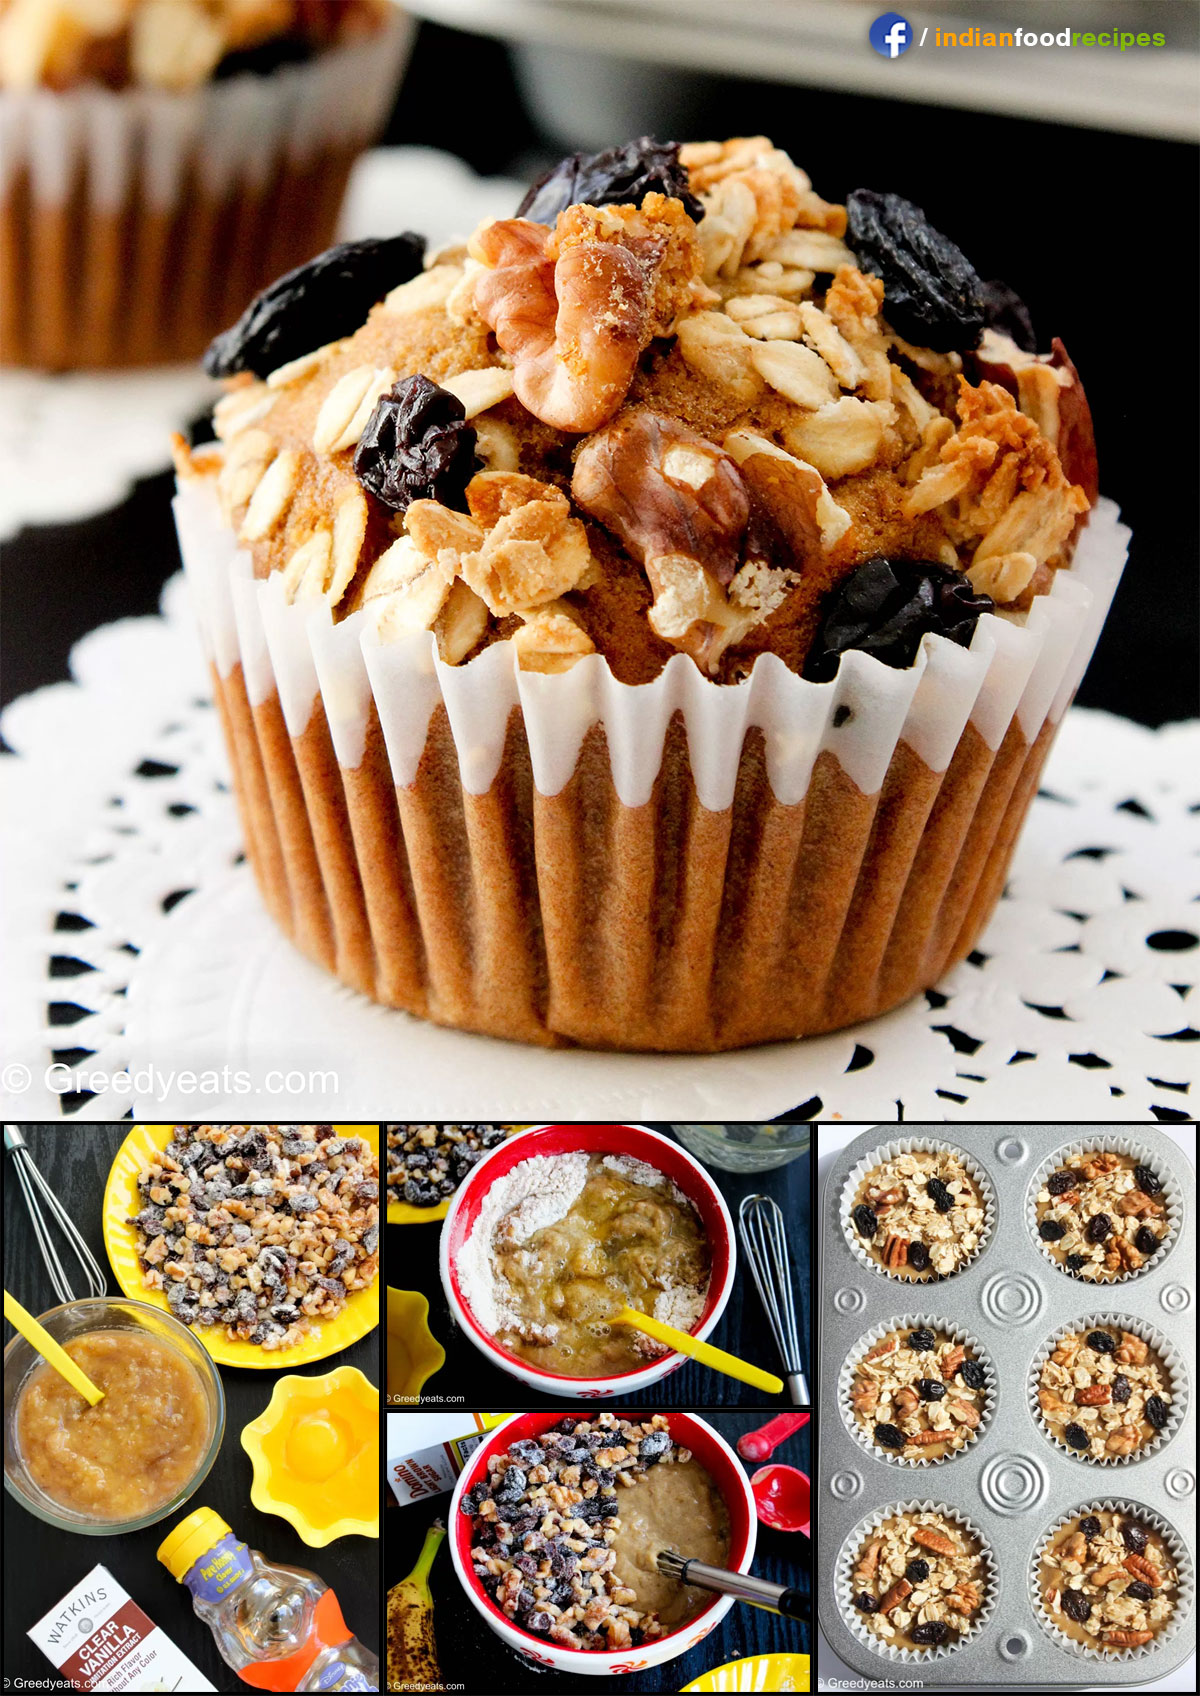 Healthy Banana Muffins recipe step by step pictures